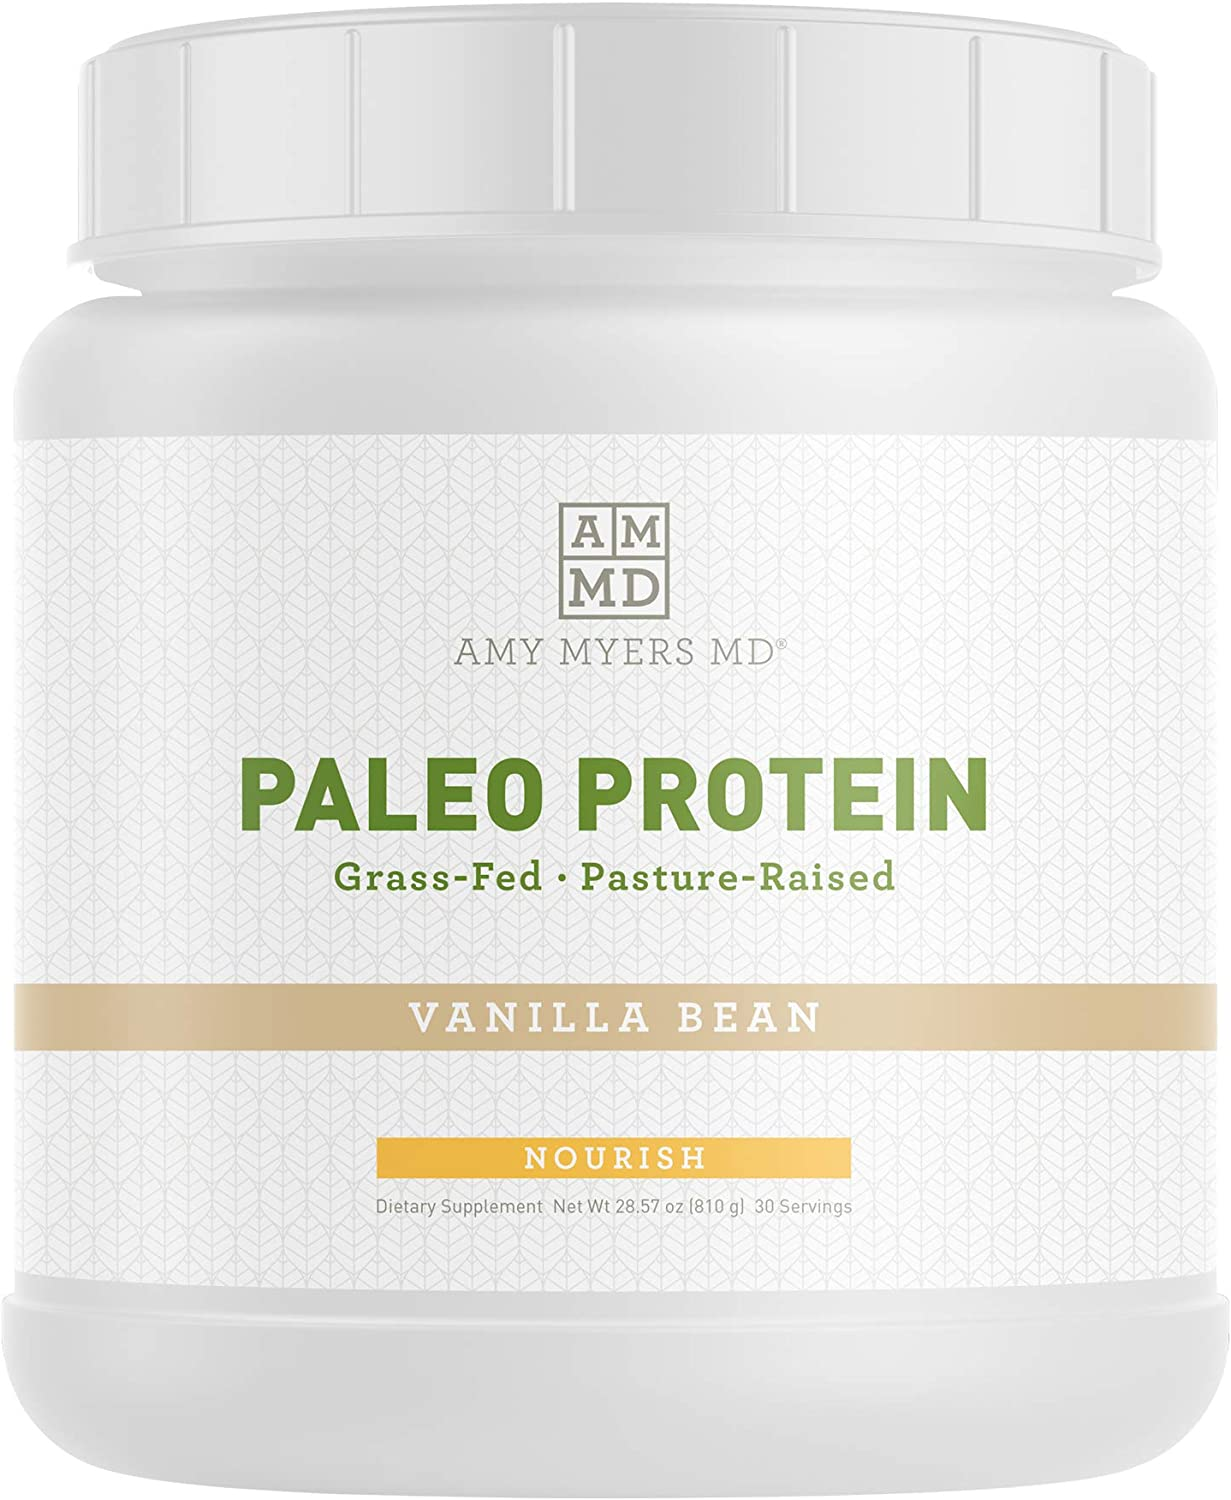 Pure Paleo Protein Quantity limited by Dr. Amy Fees free Fed – Clean Myers Past Grass